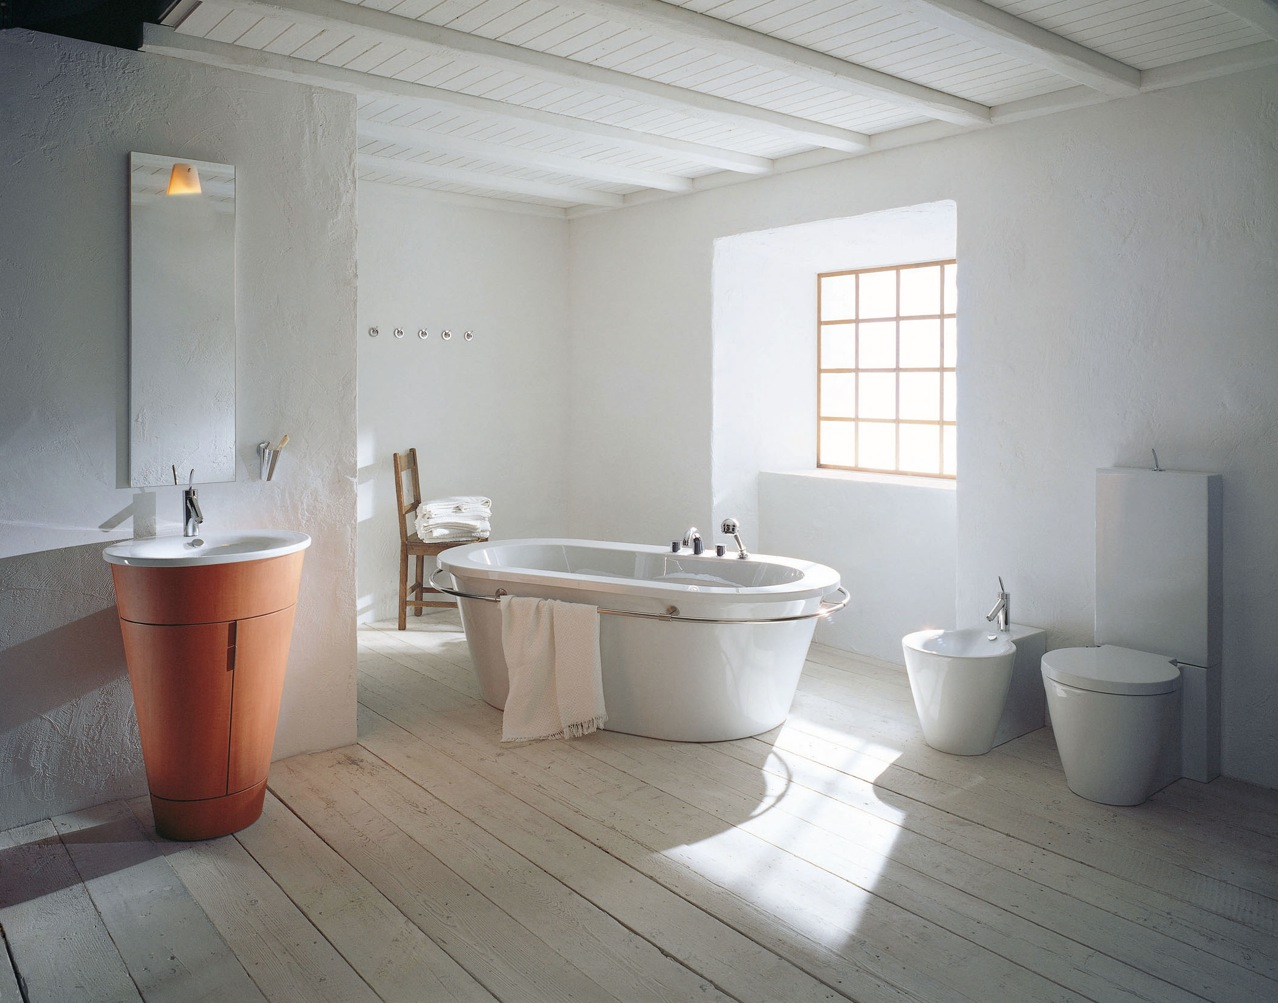 Philipe starck rustic modern bathroom decor interior for Salle de bain carrelage effet parquet